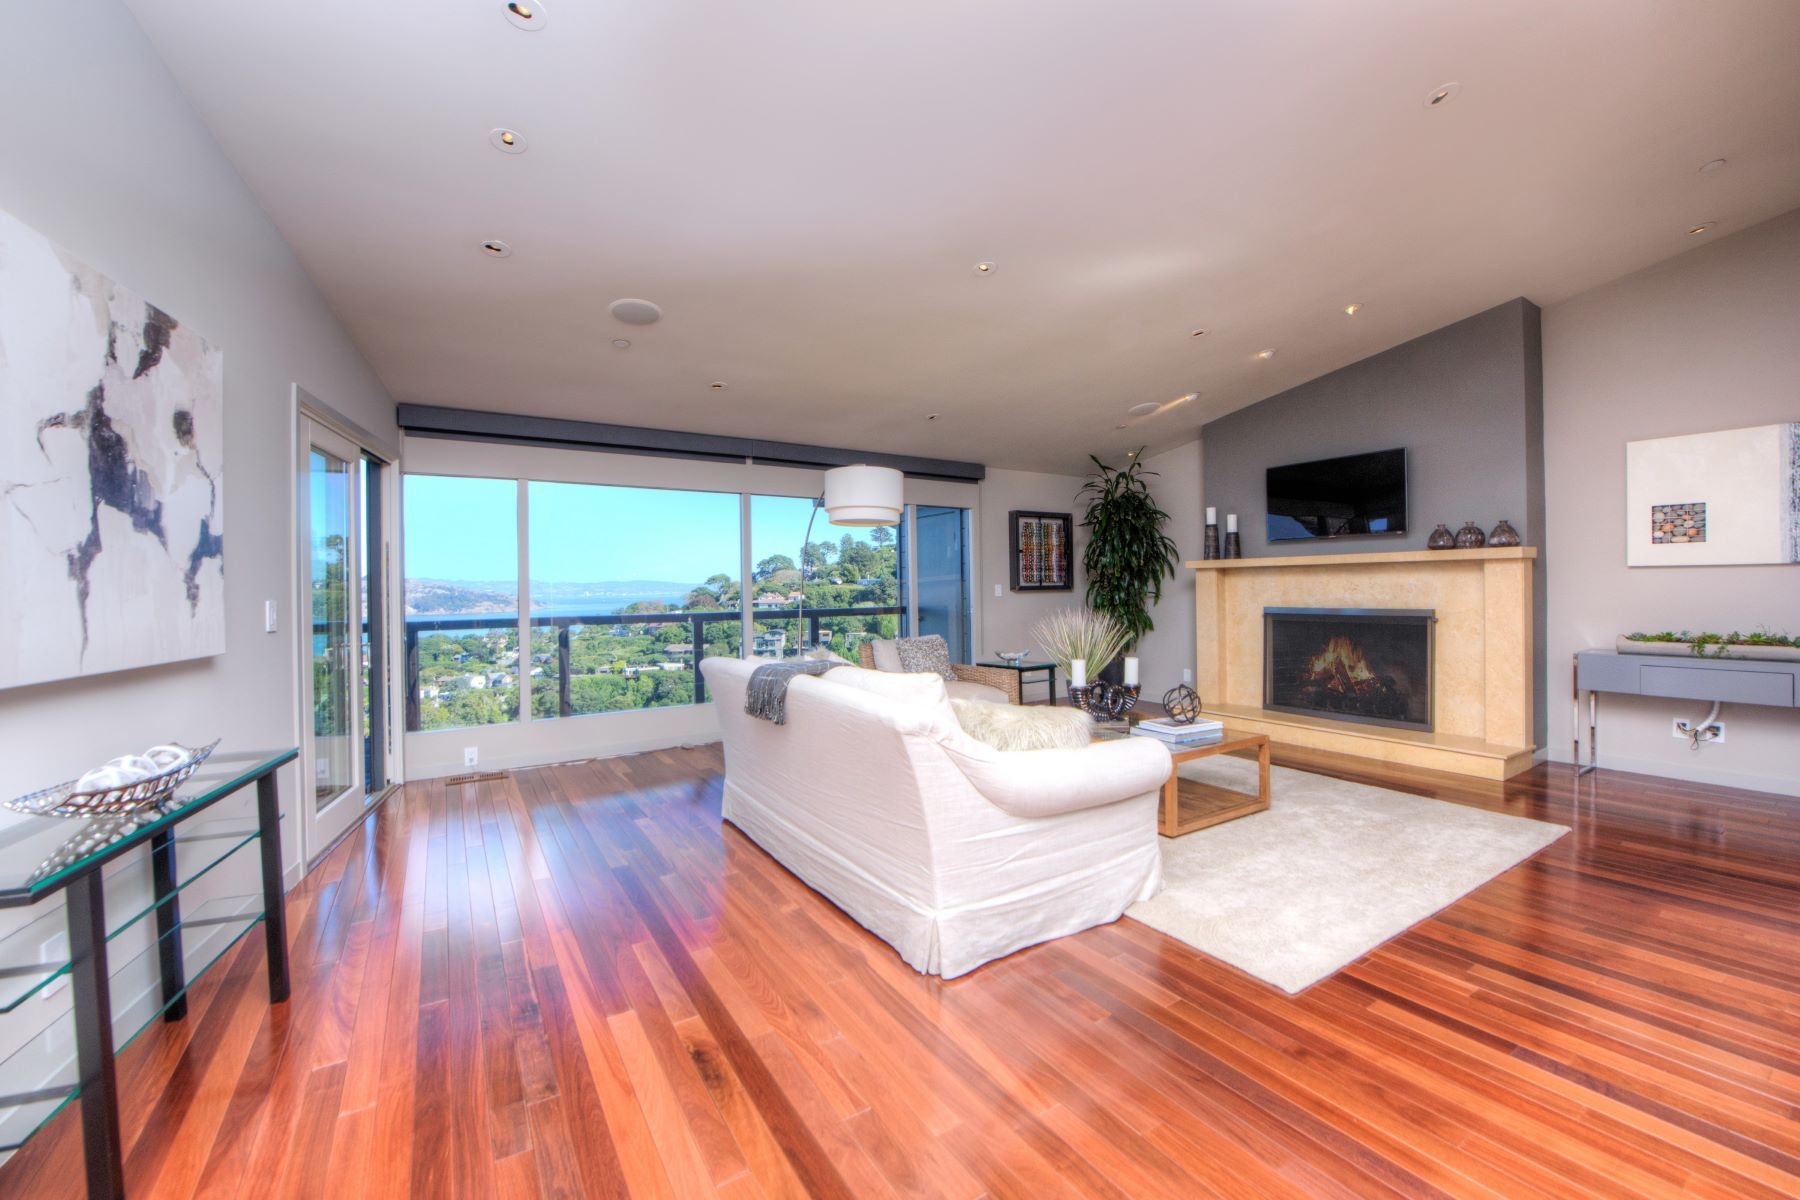 Additional photo for property listing at Contemporary with Stunning Bay Views! 51 George Lane Sausalito, カリフォルニア 94965 アメリカ合衆国